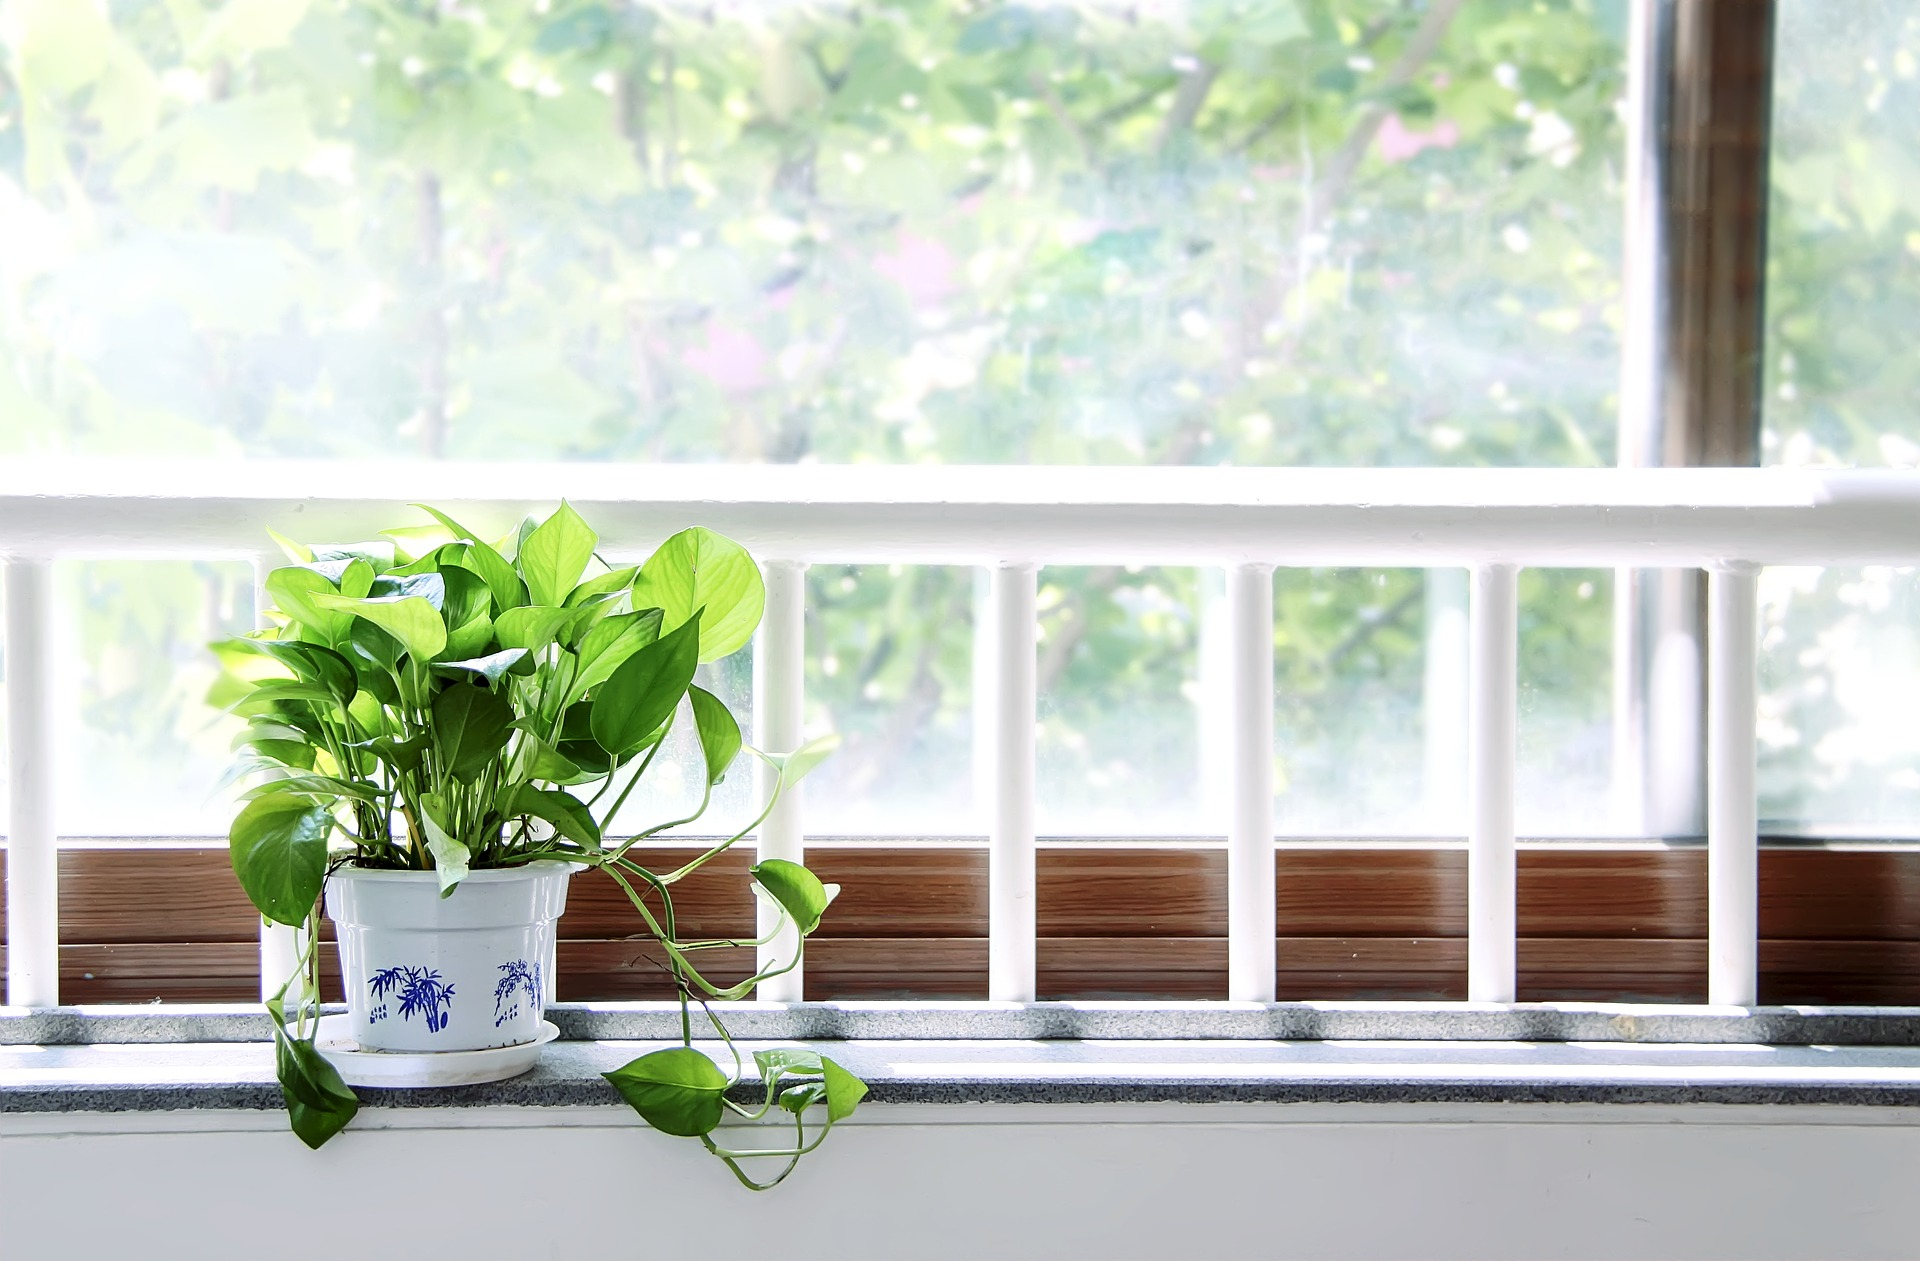 Potted plant sitting on window